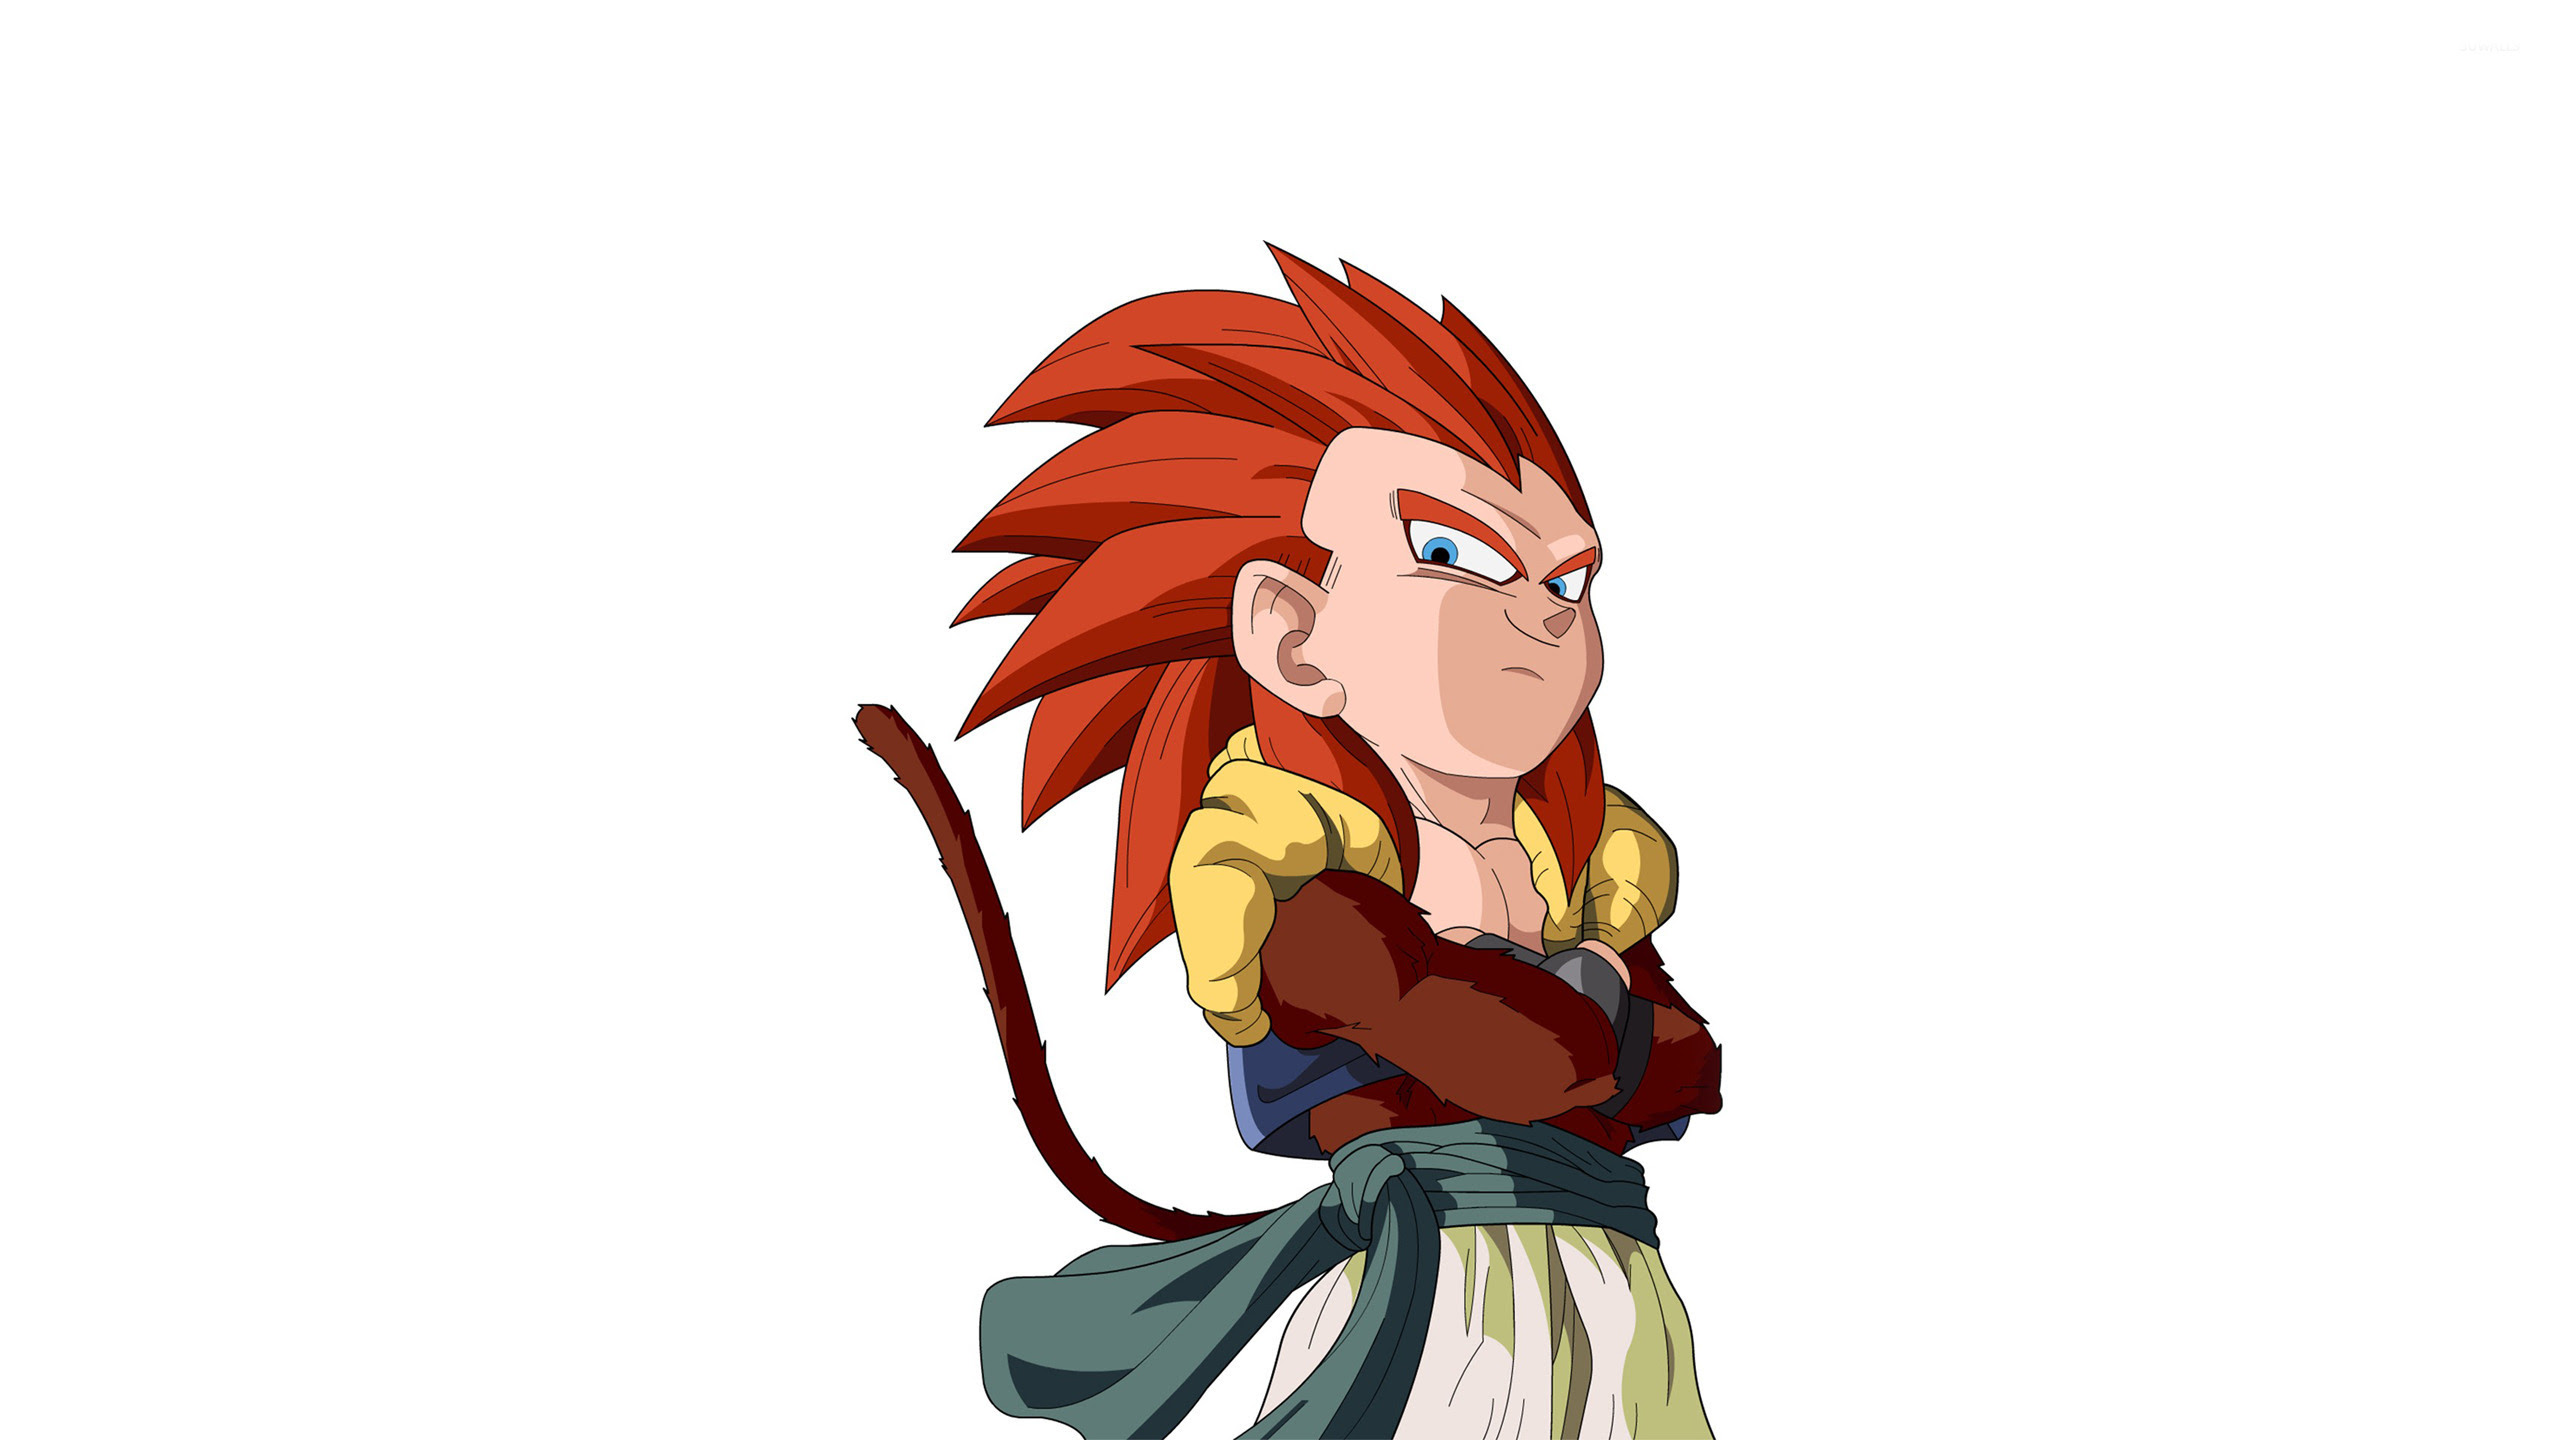 Gotenks Ssj4 Dragonball Gt Wallpaper 800976